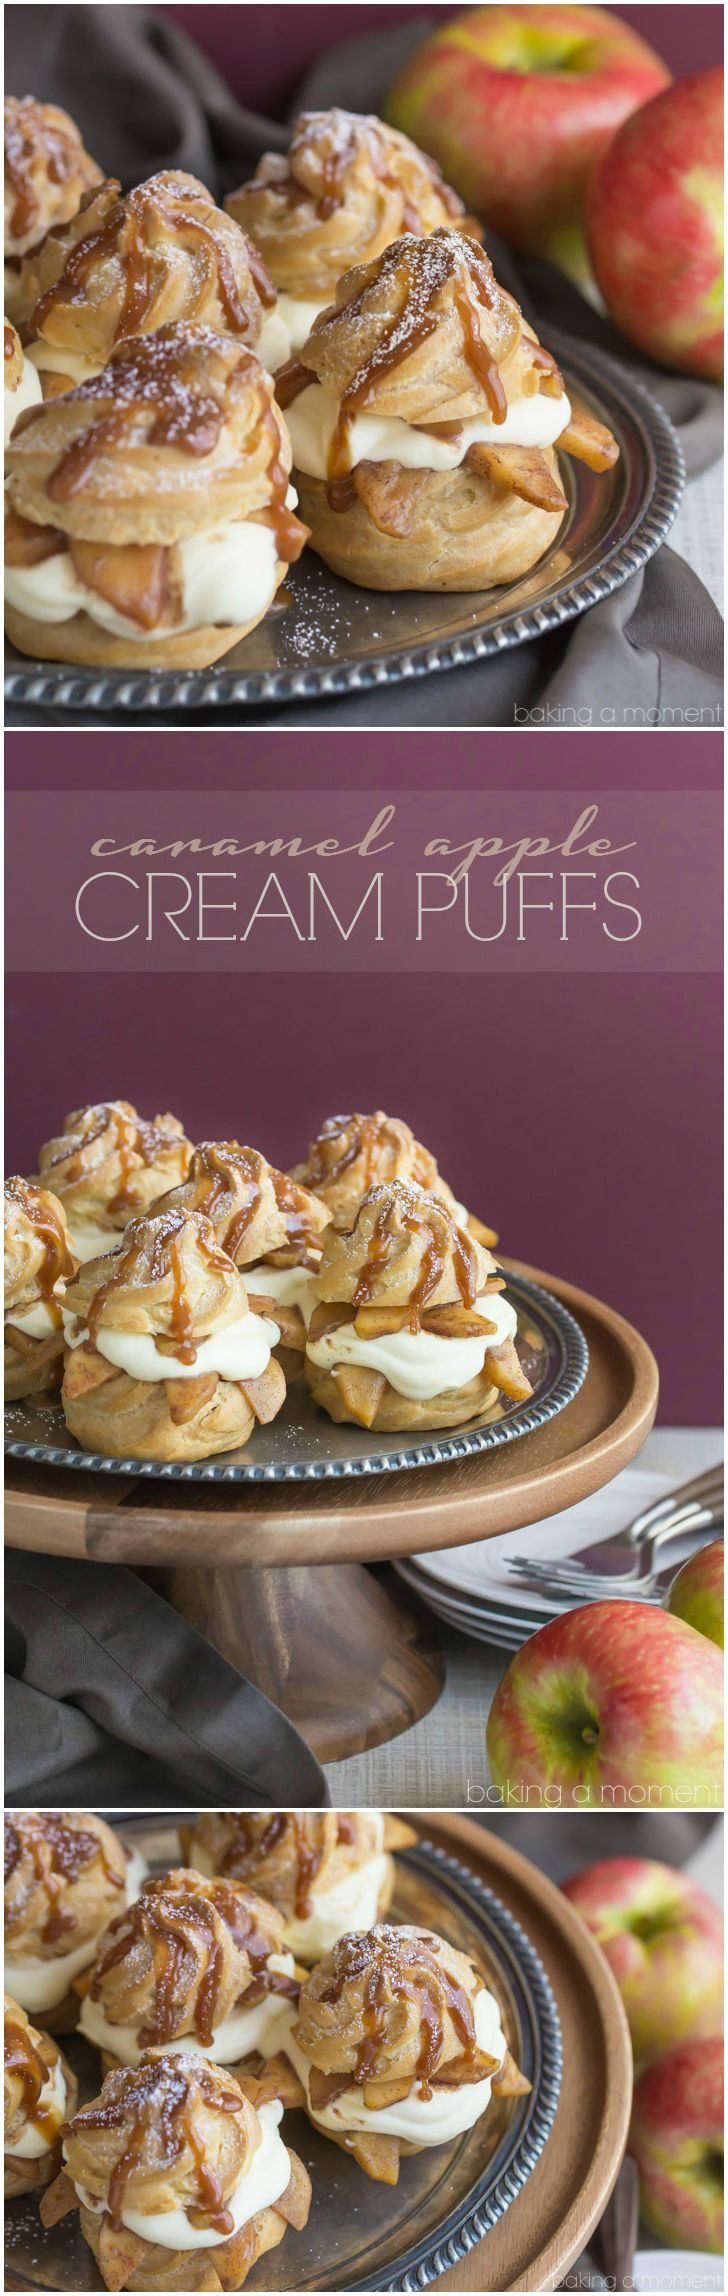 Good Fall Desserts  Best 25 Recipe for cream puffs ideas on Pinterest